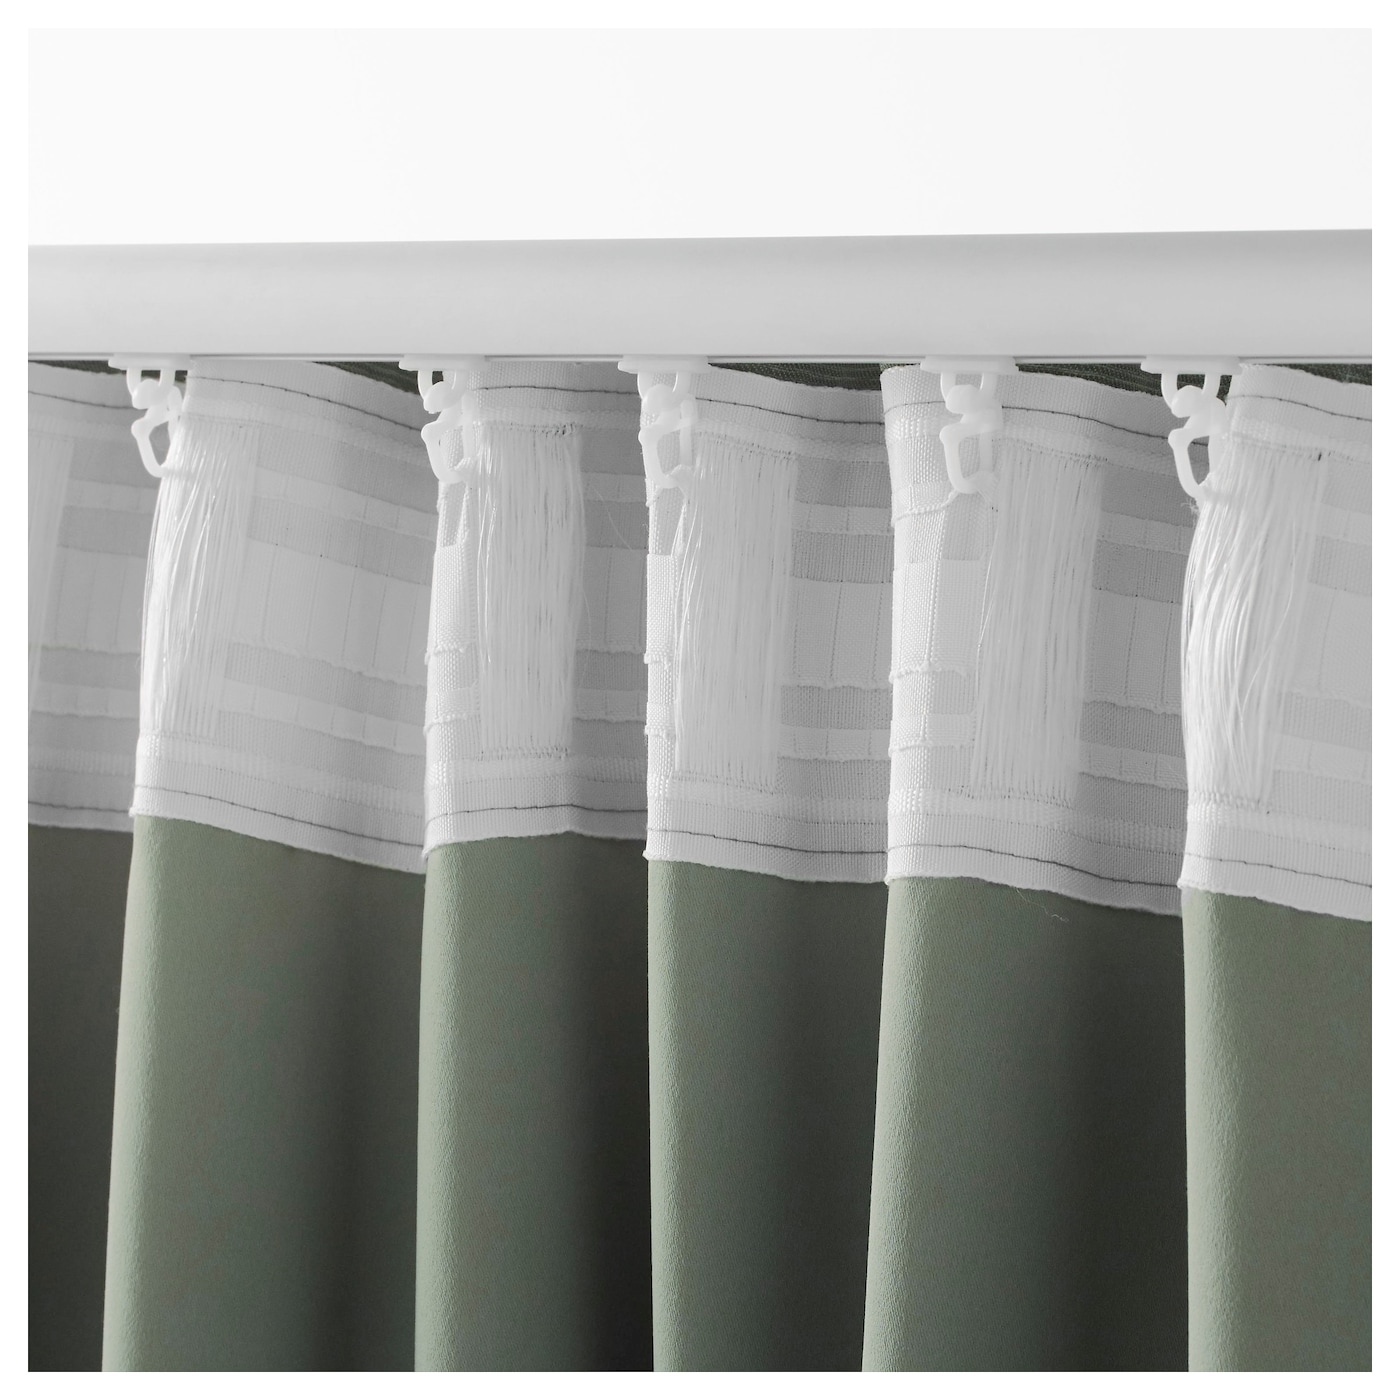 rugs textiles white is after en strong products curtains gb art durable softer pair cm linen fj blinds and derklint gets washing ikea green